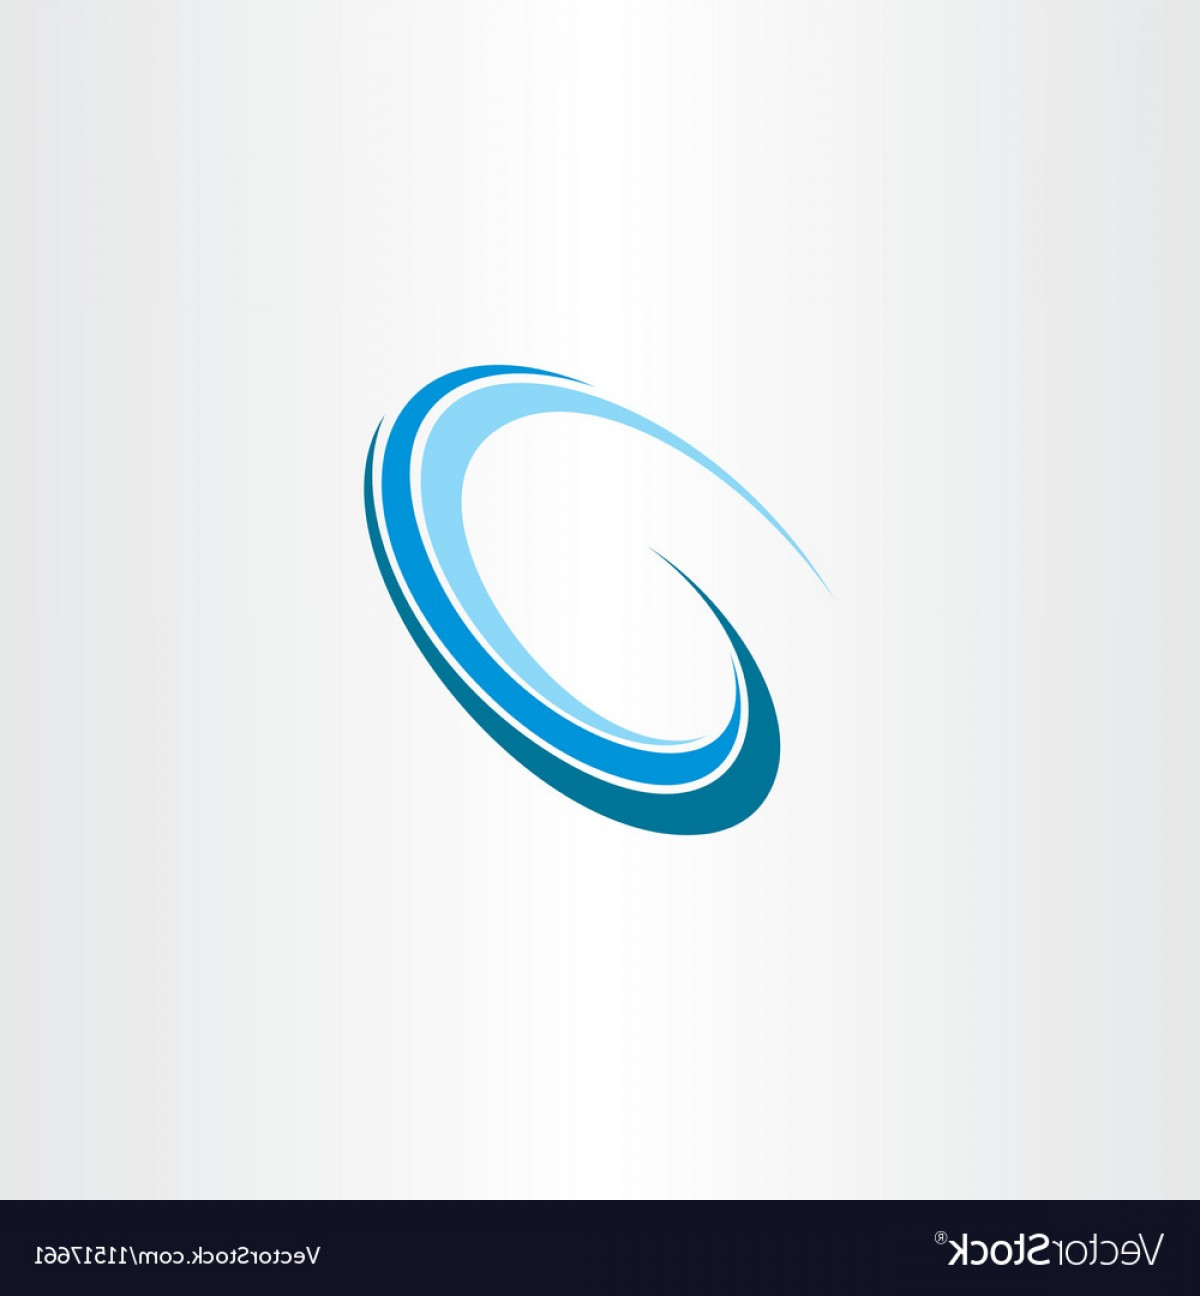 Water Flow Vector: Wave Water Flow Design Icon Logo Vector